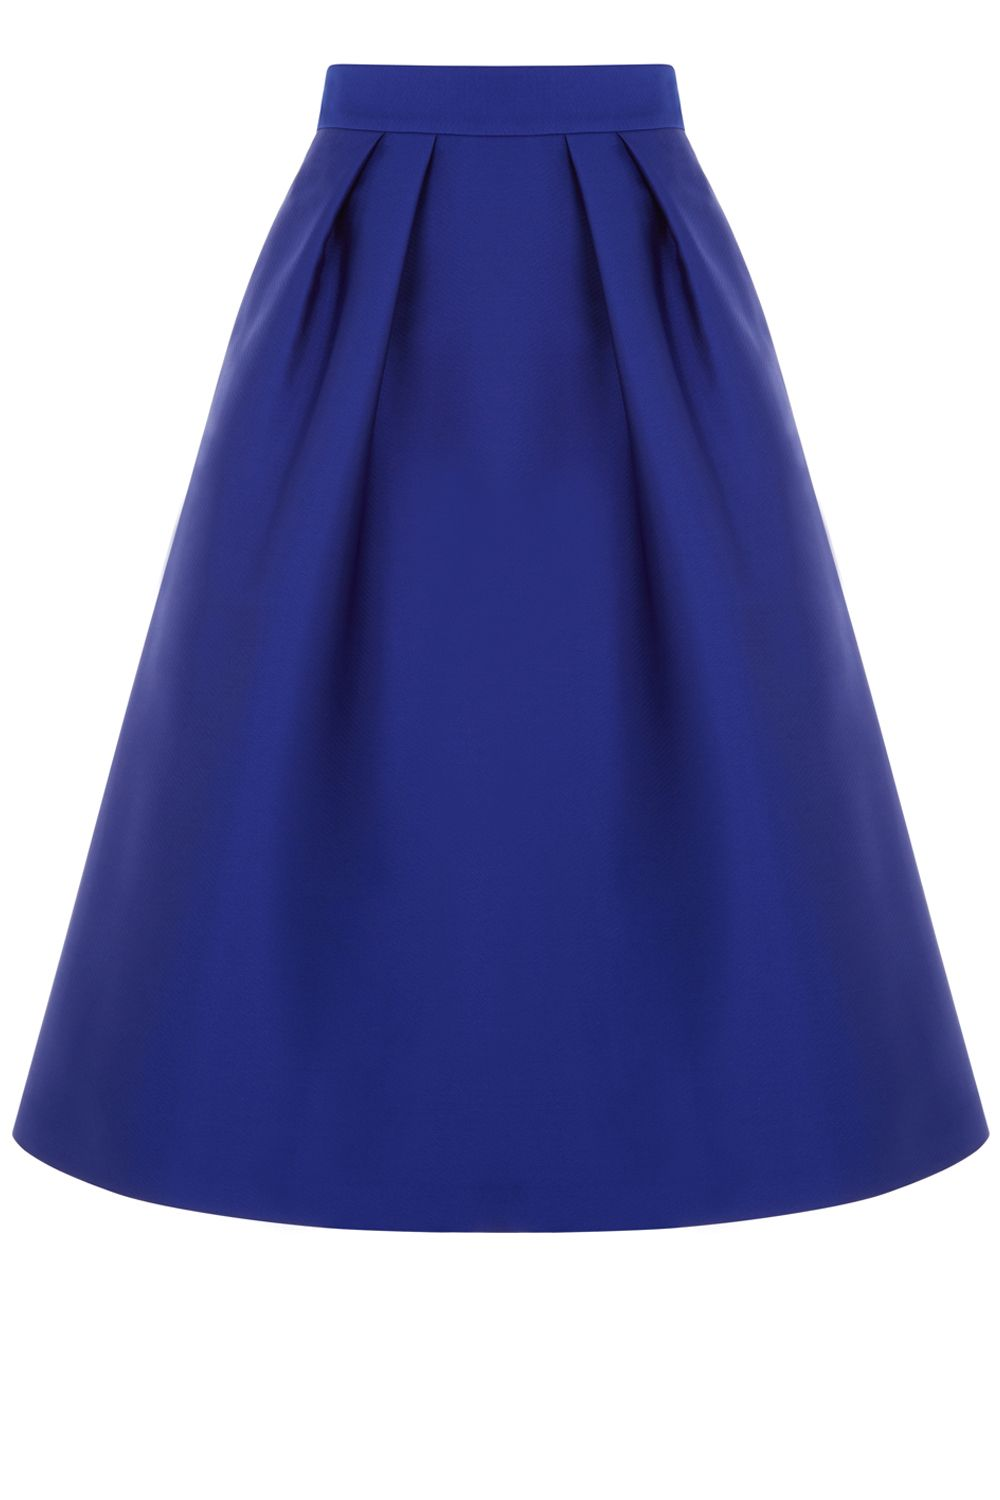 Oasis Satin Twill Midi Skirt, Blue